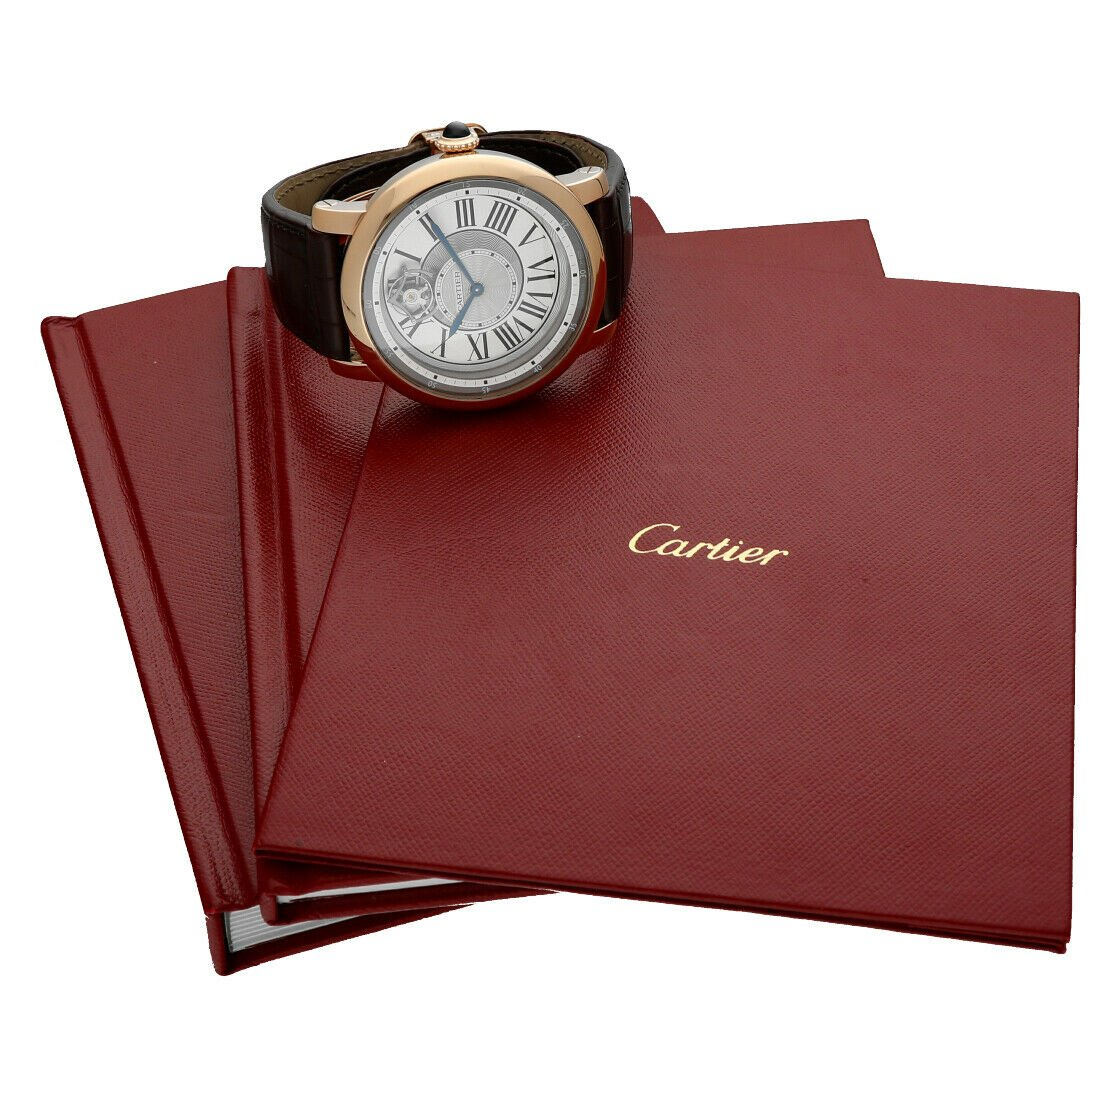 Cartier 3308 W1556205 Rotonde Astrotourbillon 18k Rose Gold Limited Mens Watch 124243384081 10